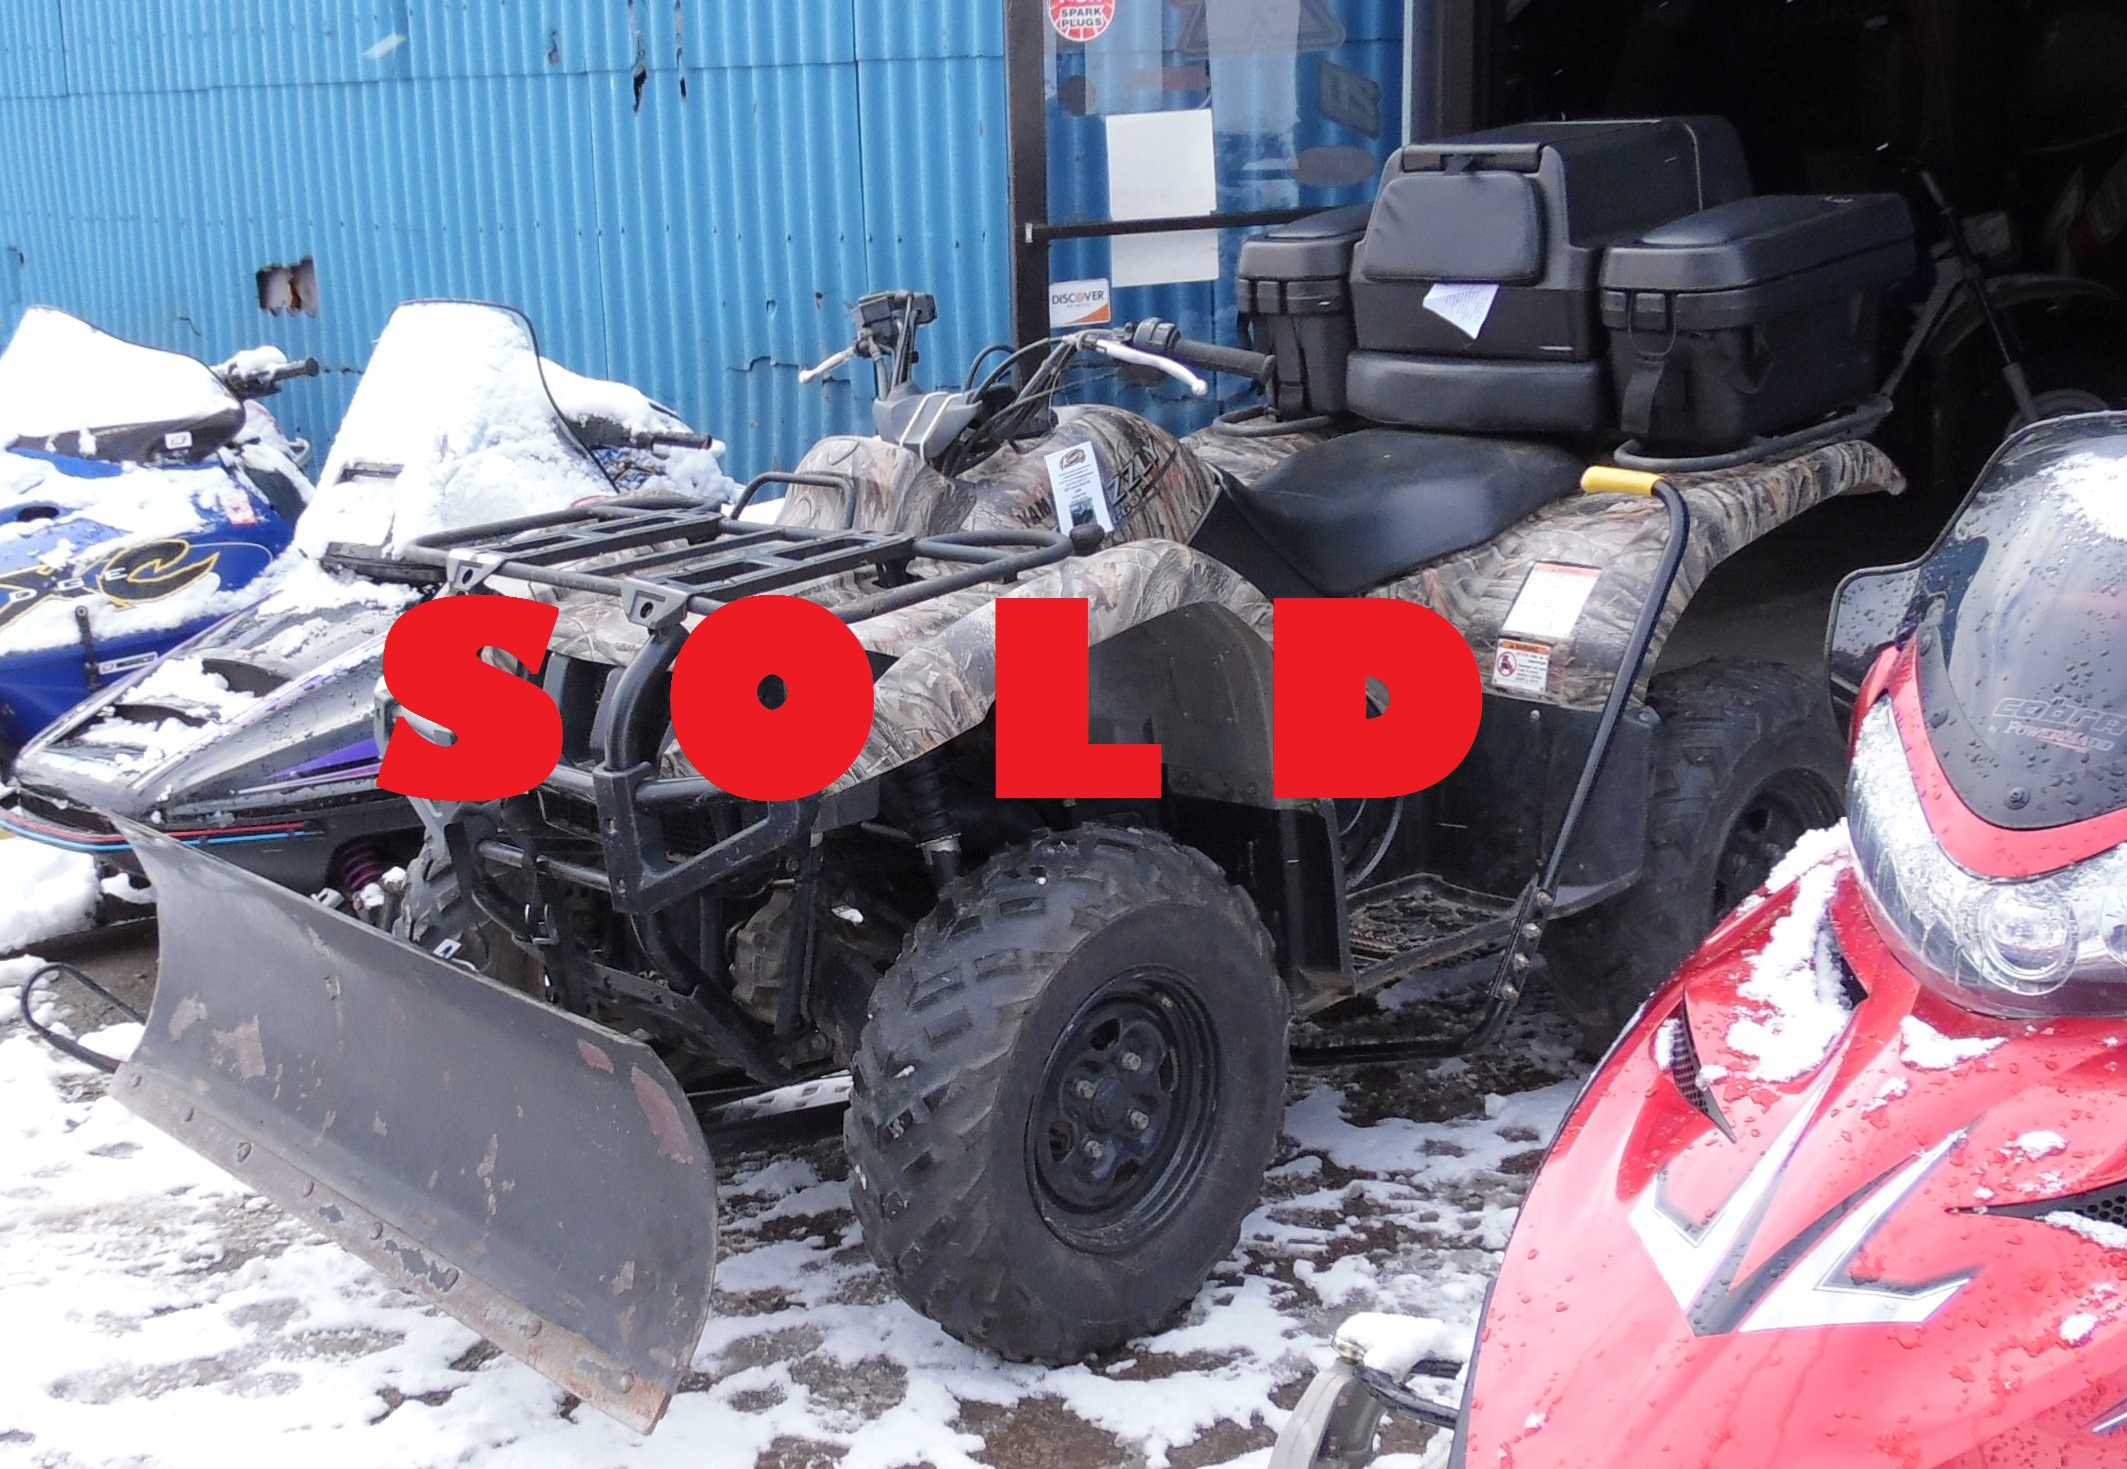 Yamaha Grizzly 660 >> 2005 Yamaha Grizzly 660 | Kneppers Repair